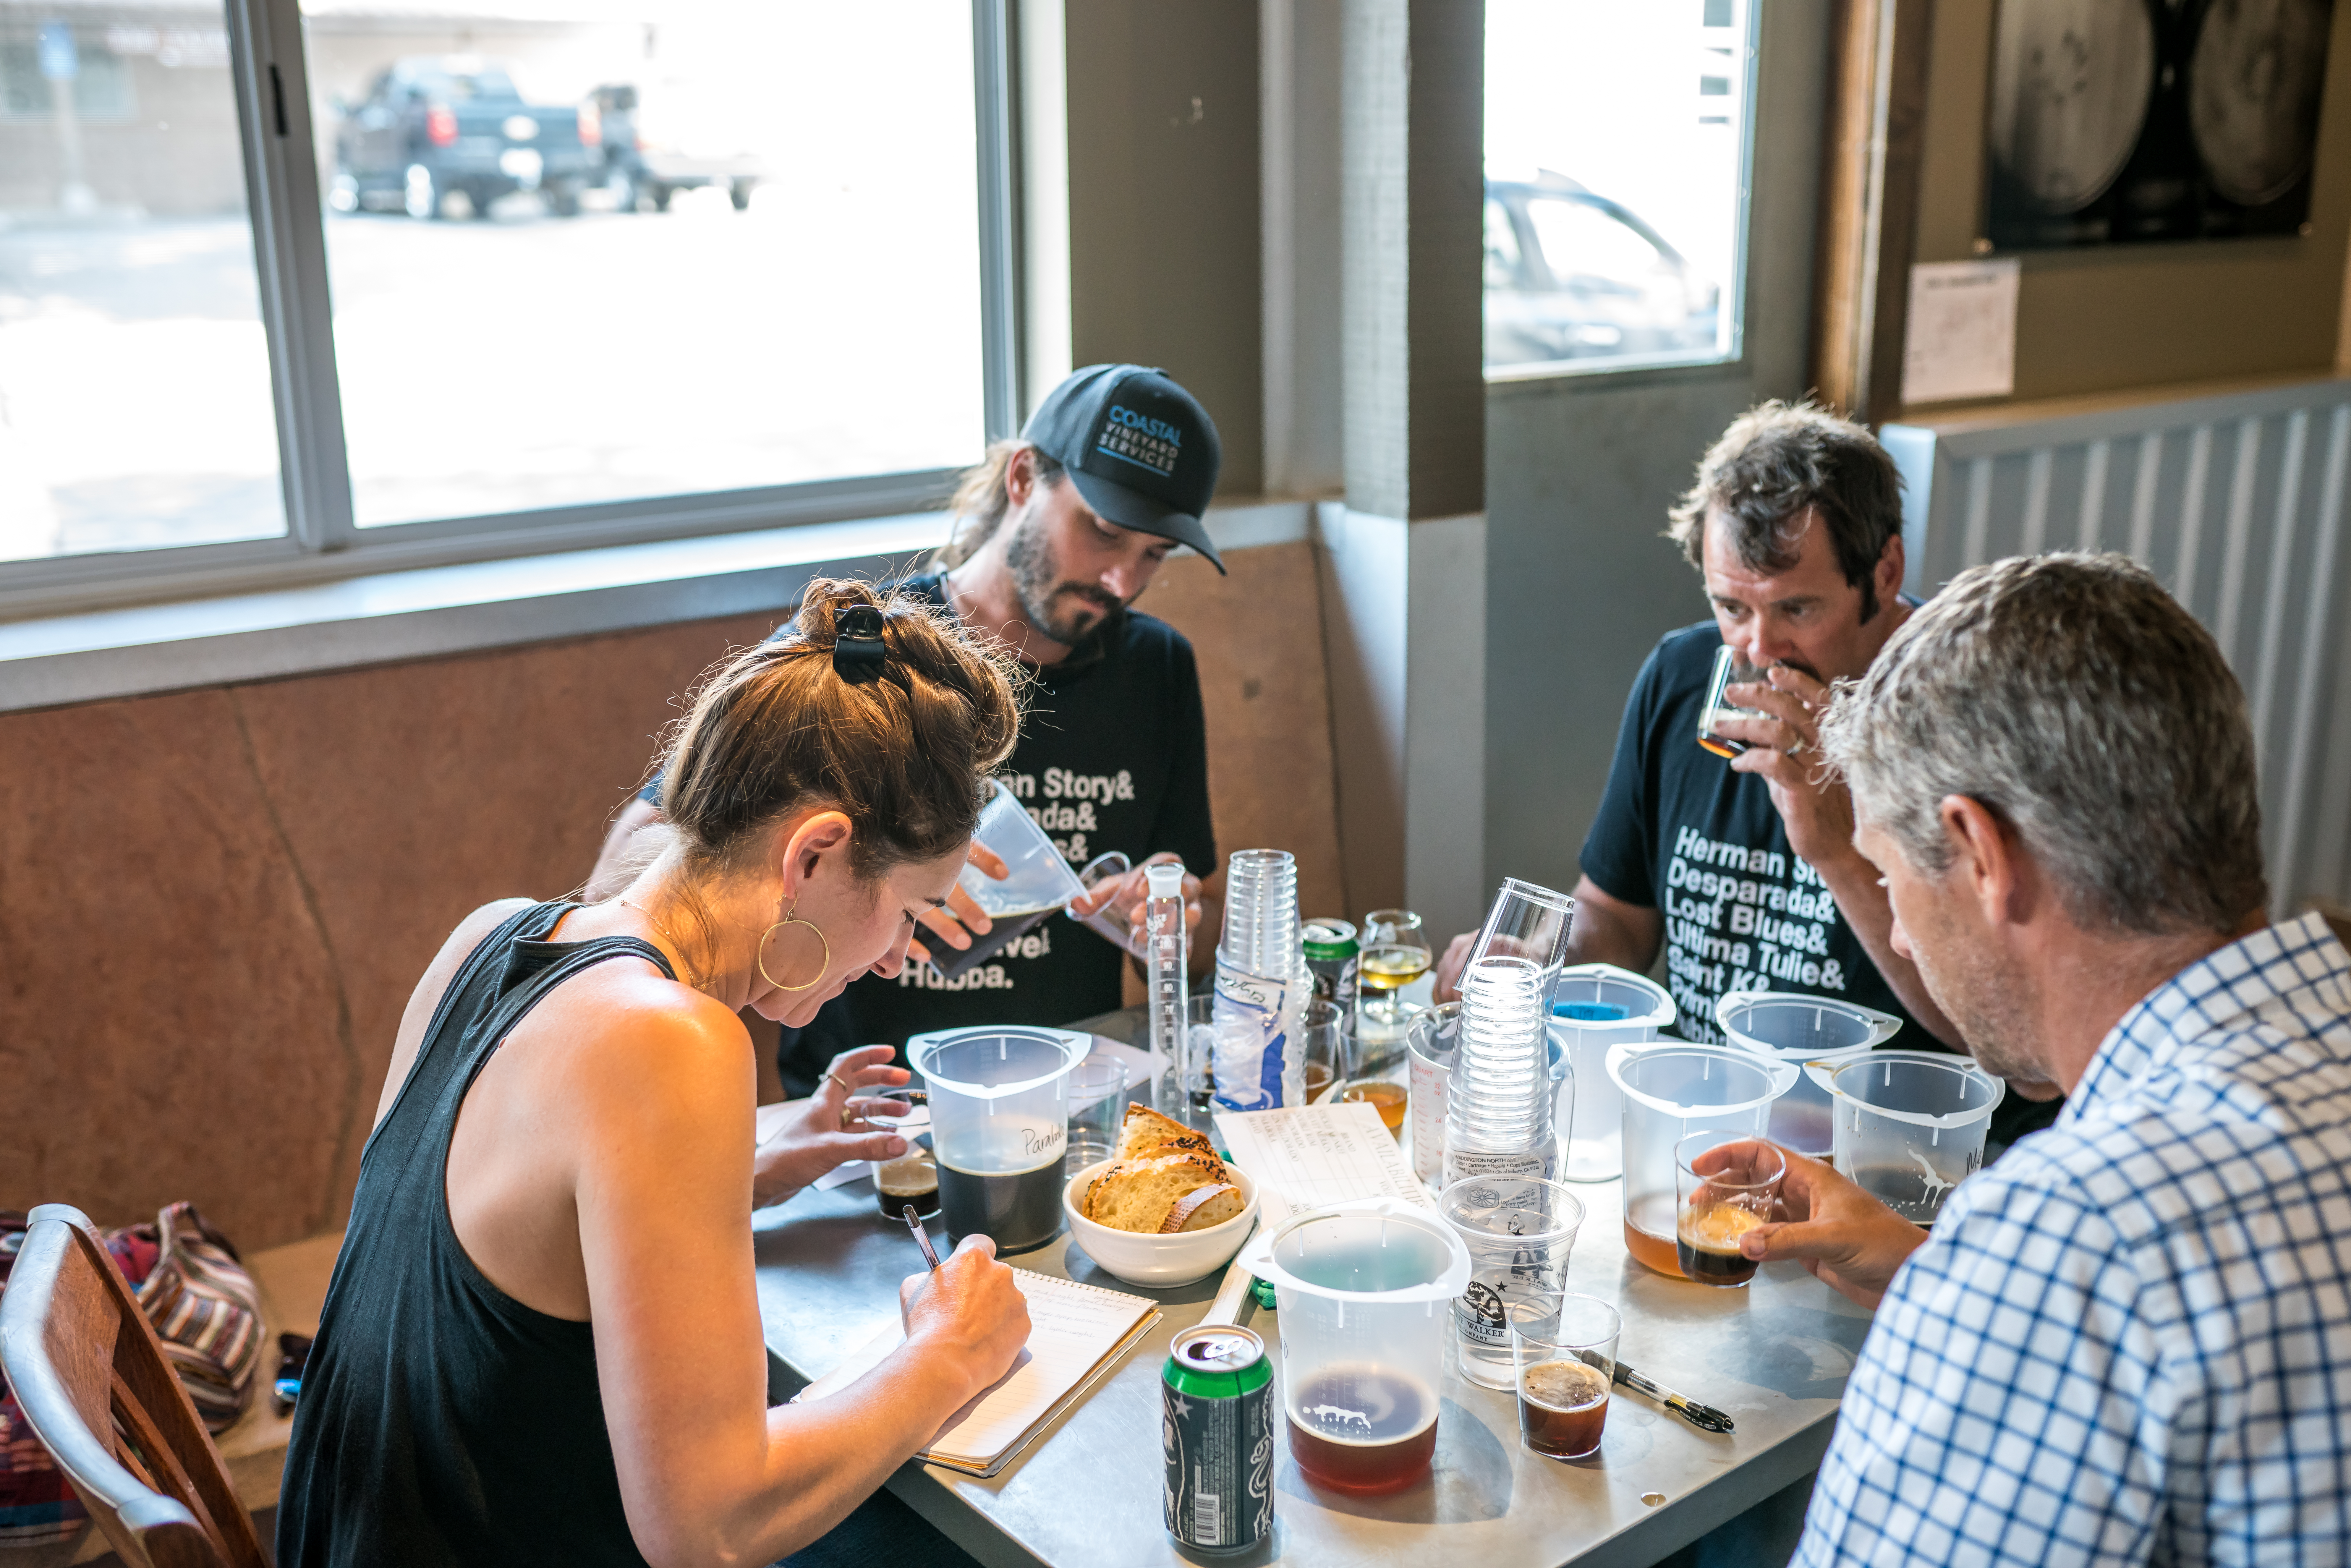 The wine makers during the blending process that became Firestone Brewing XXII Anniversary Ale. (image courtesy of Firestone Walker Brewing)